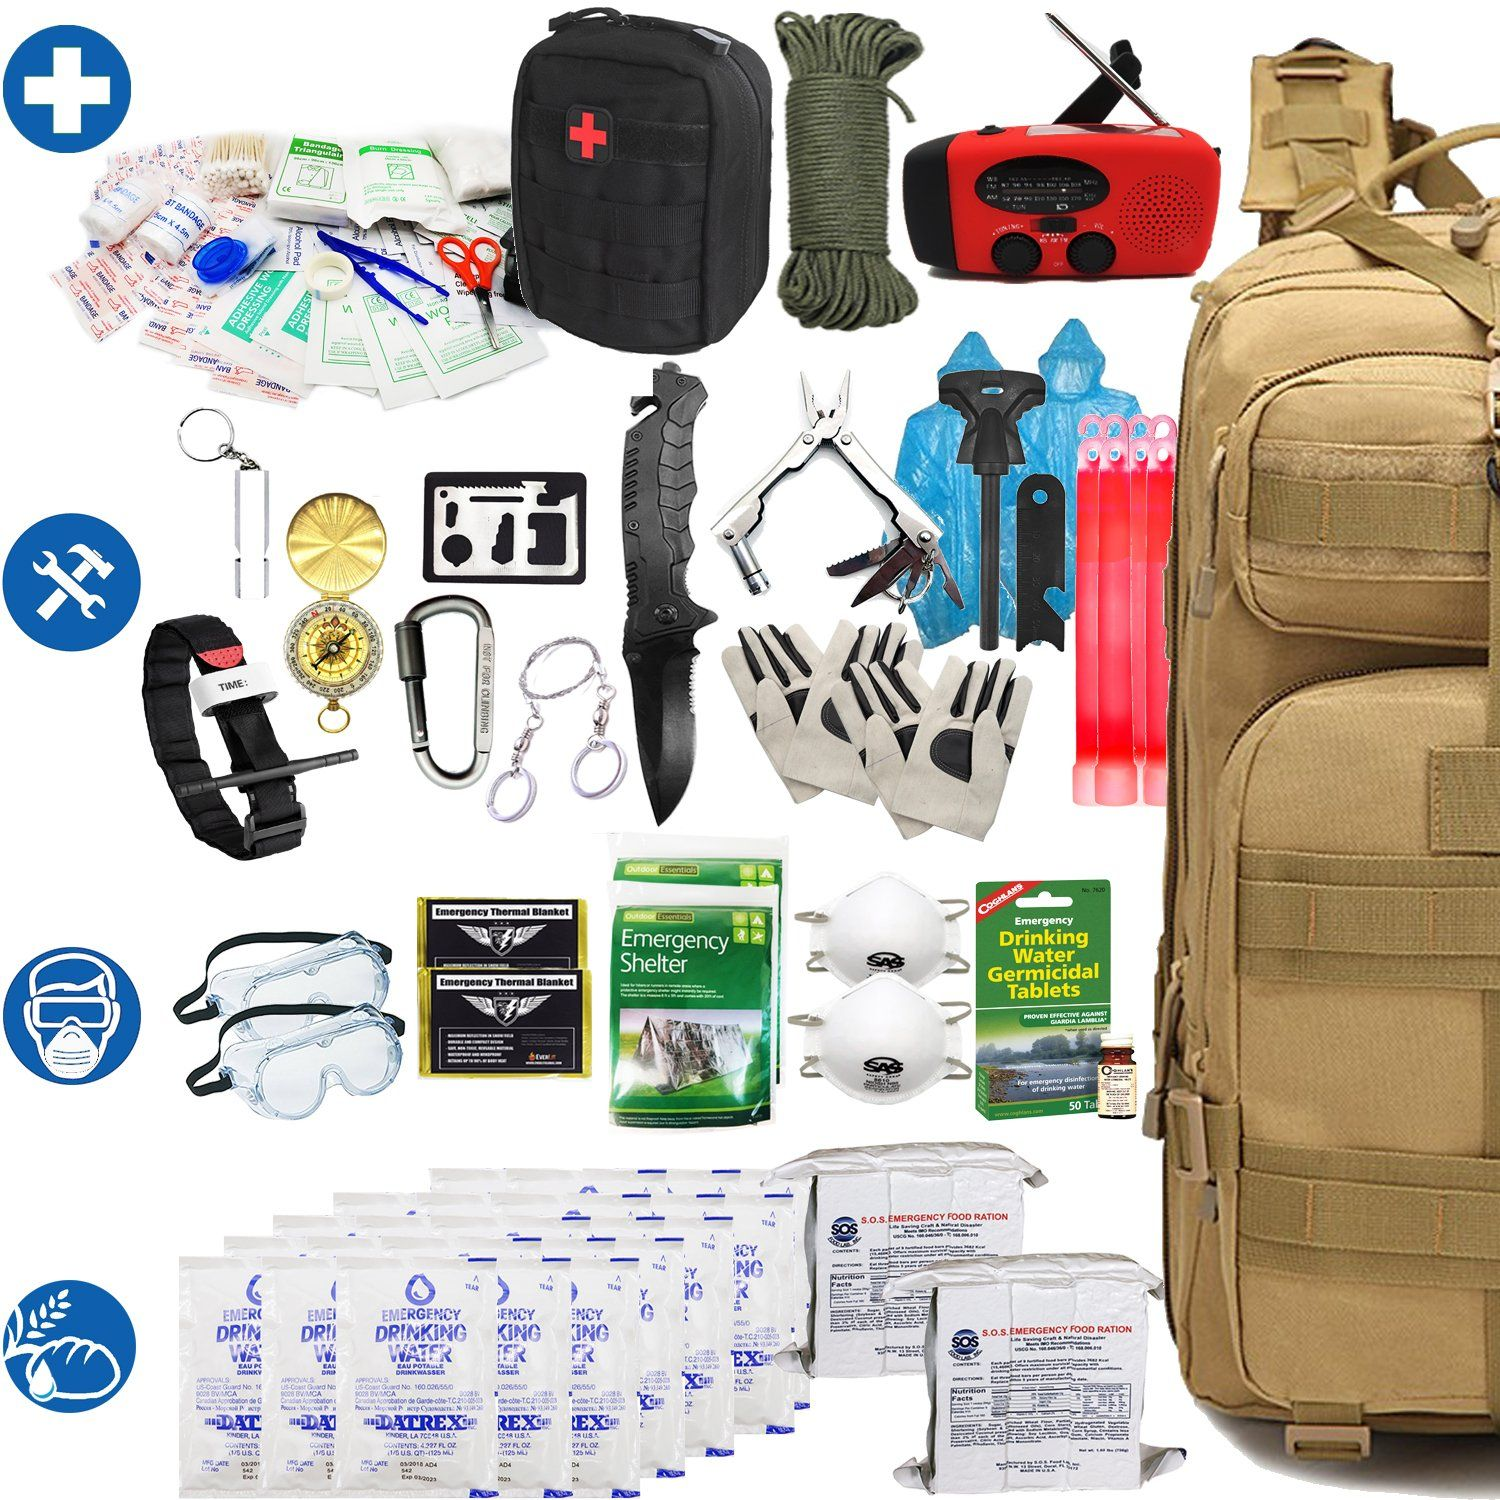 Amazon Com Everlit Earthquake Emergency Kits Survival Kit 72 Hrs 2 Person Bug Out Bag For Hurrican Earthquake Emergency Kit Emergency Survival Kit Bug Out Bag